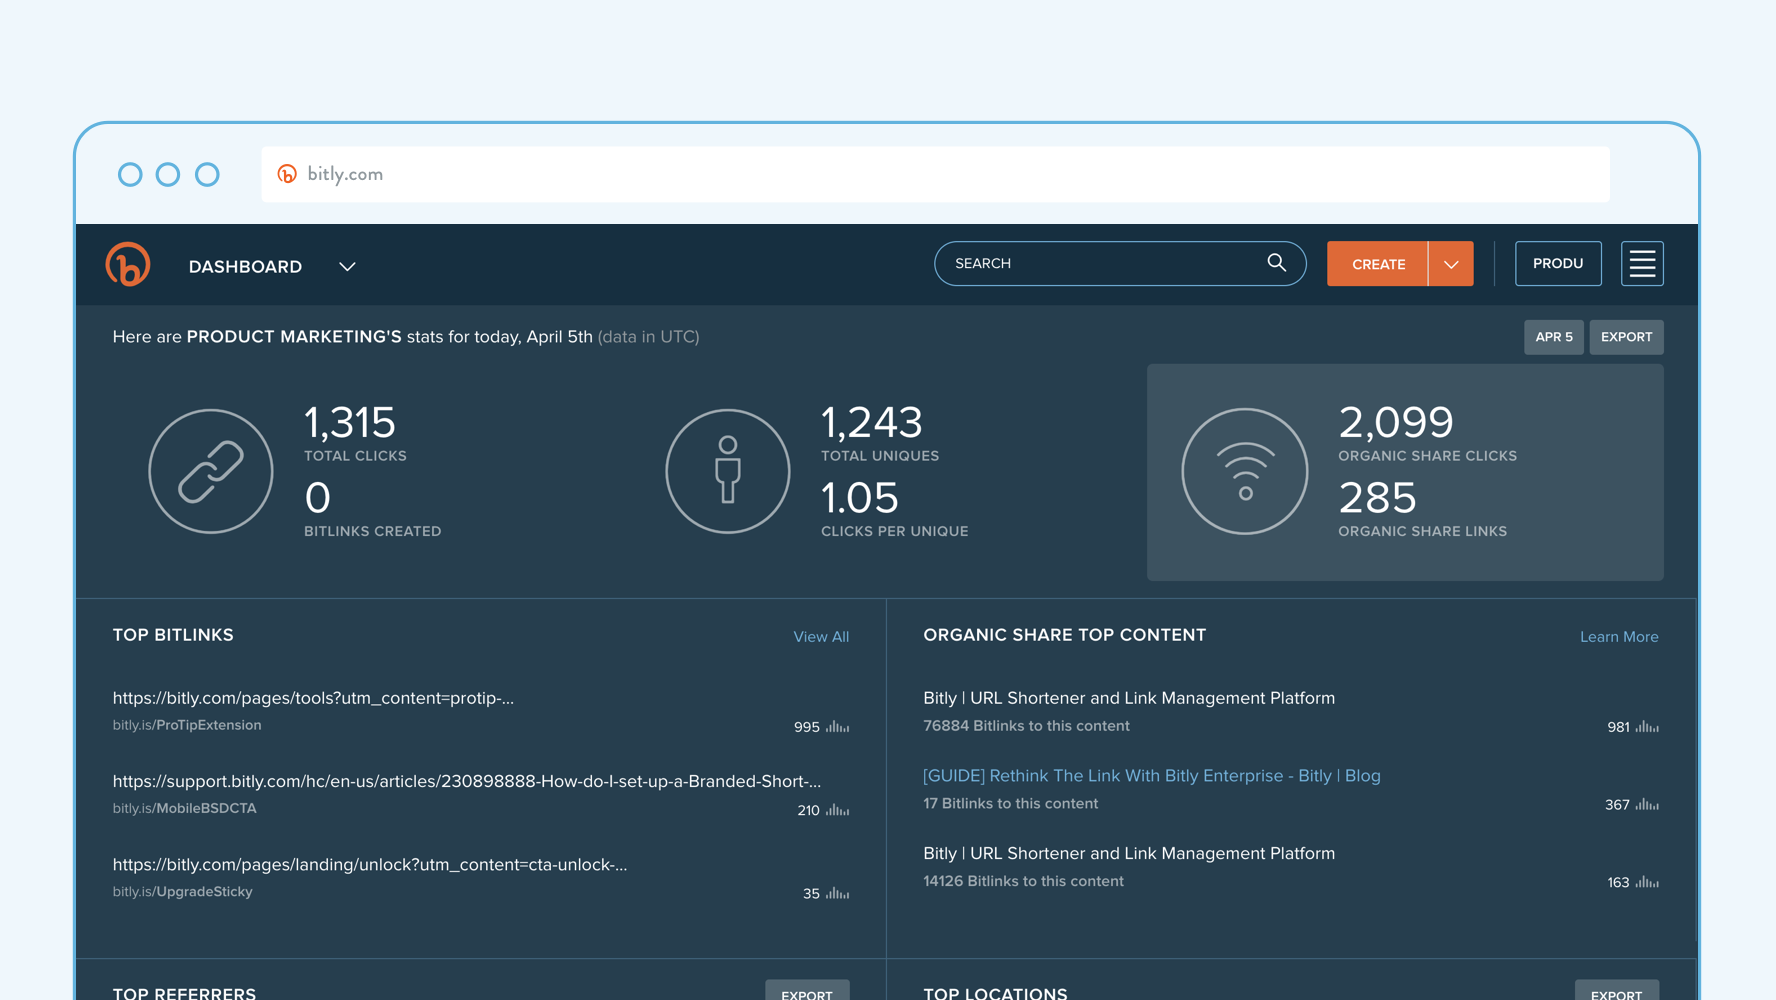 Image showing an example view of a user's Bitly dashboard